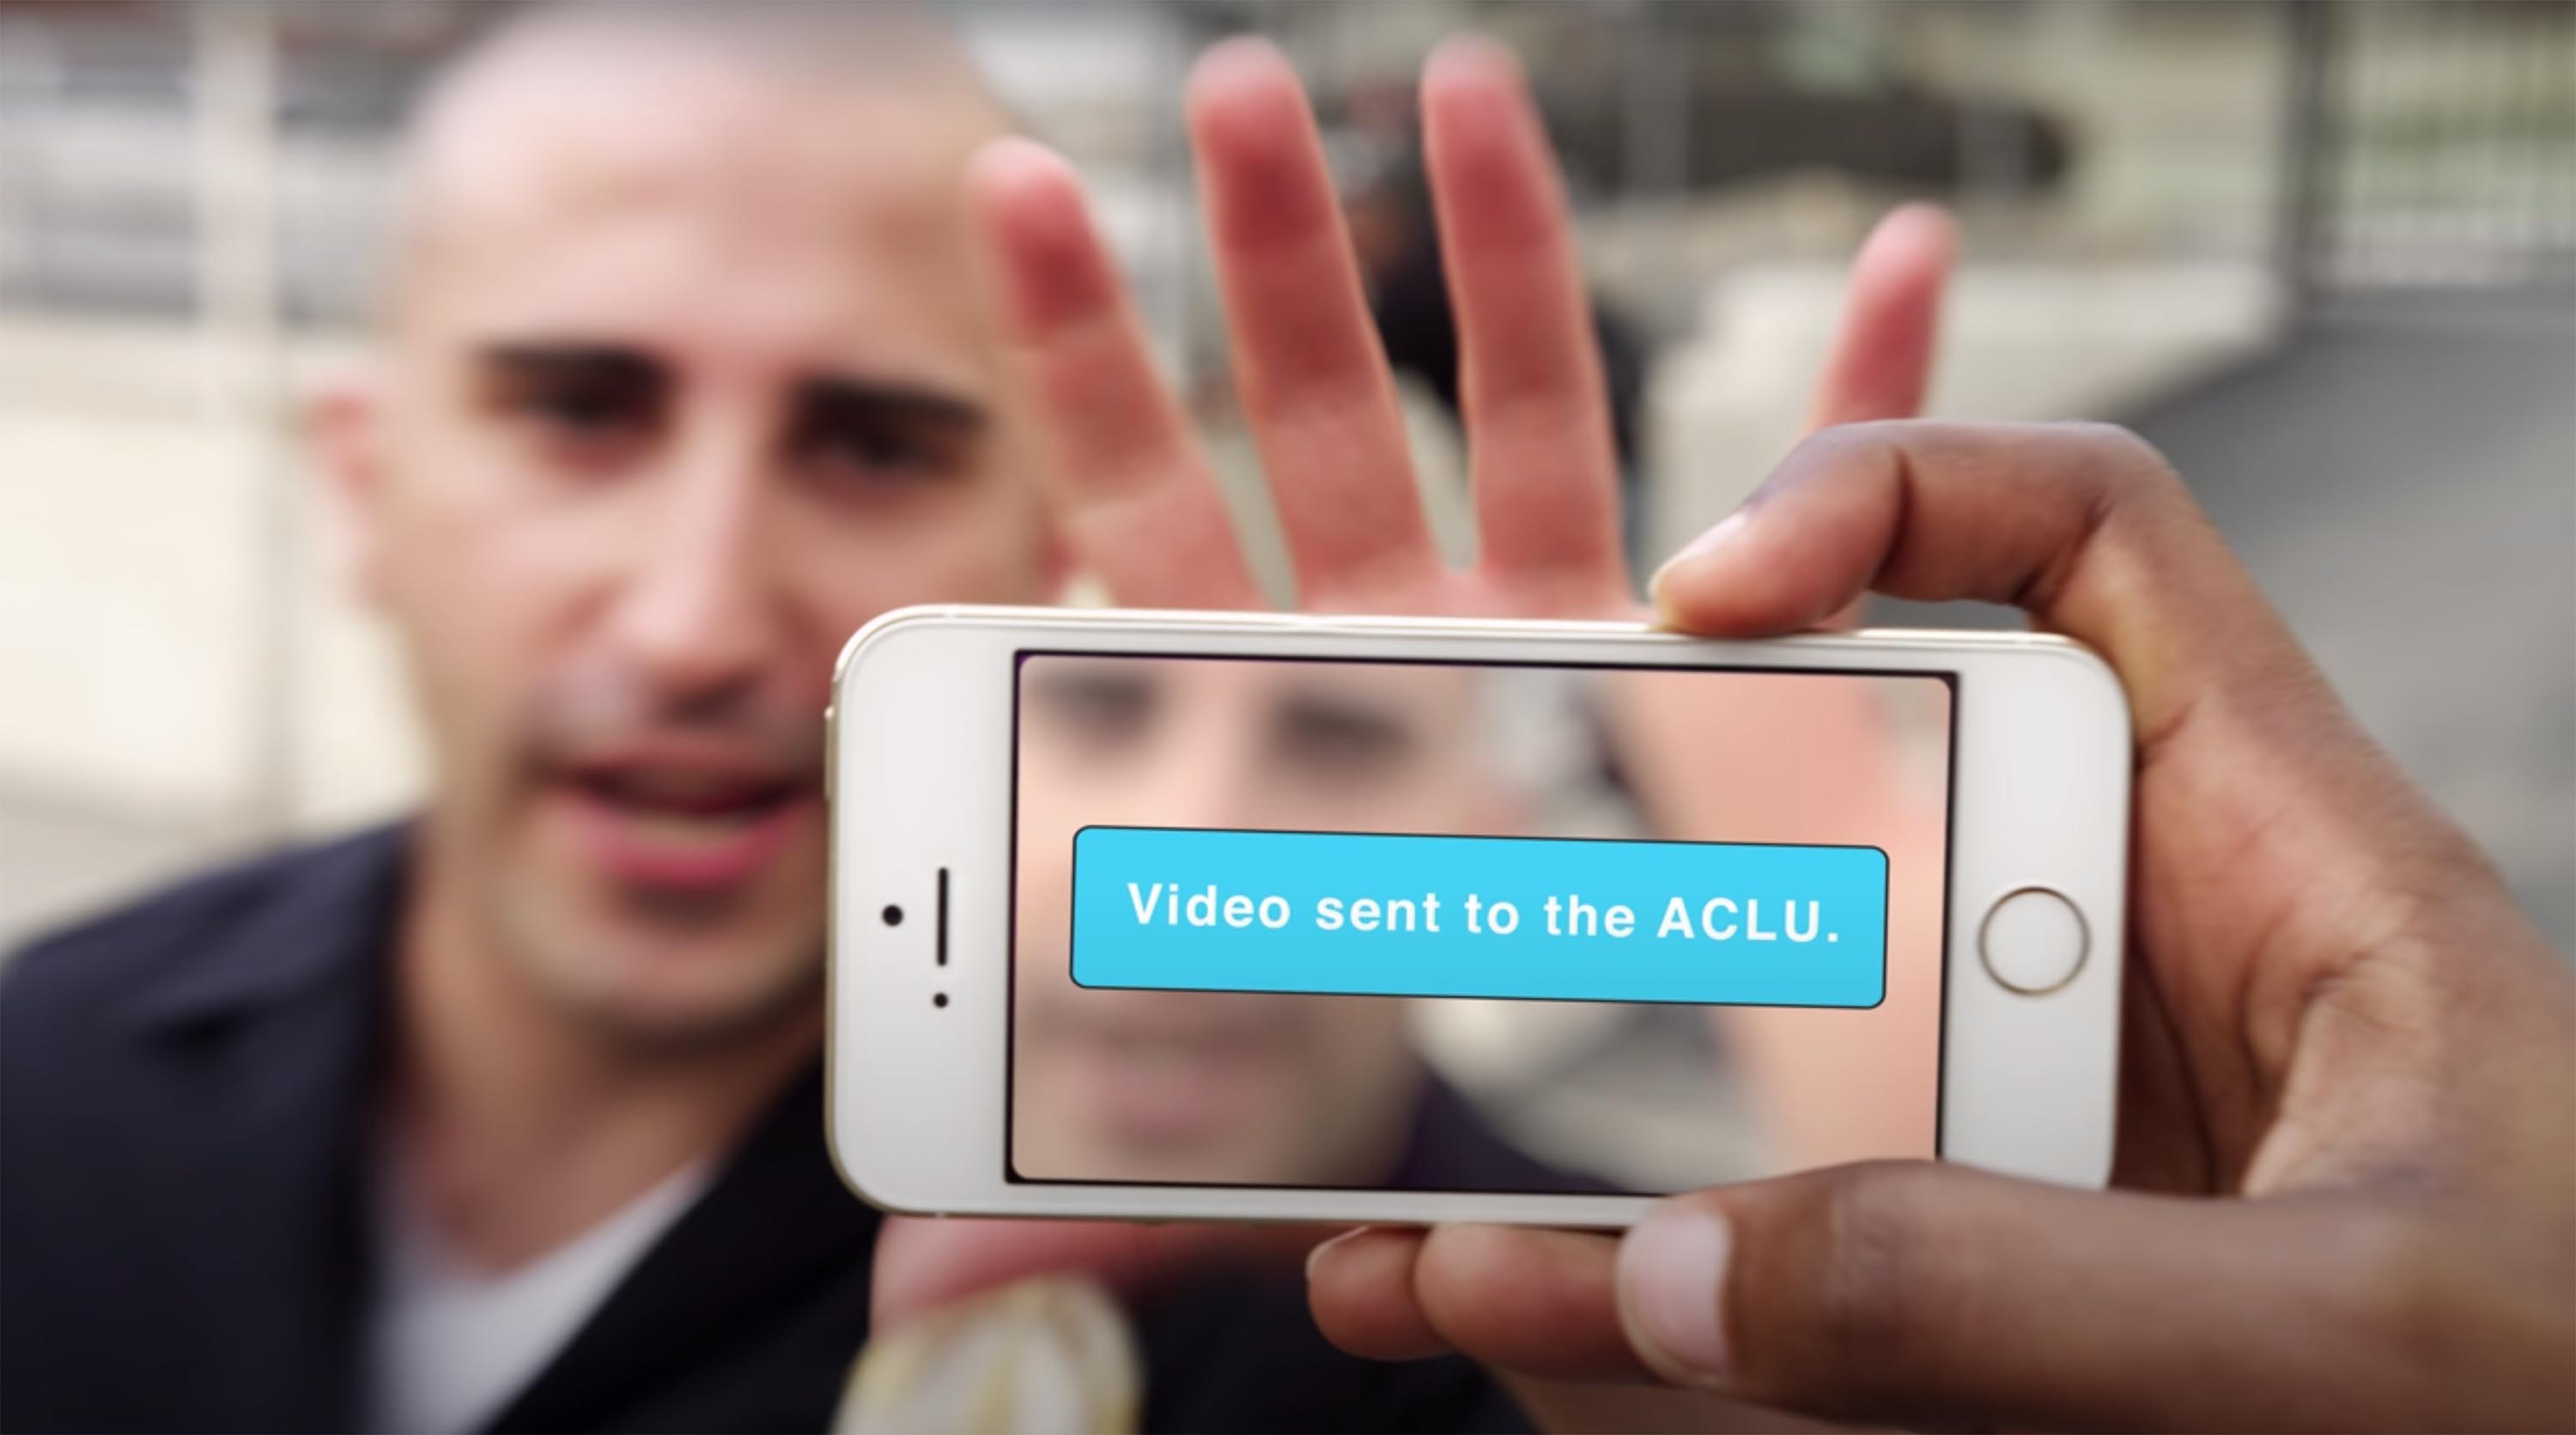 The ACLU created an app to help people record police misconduct